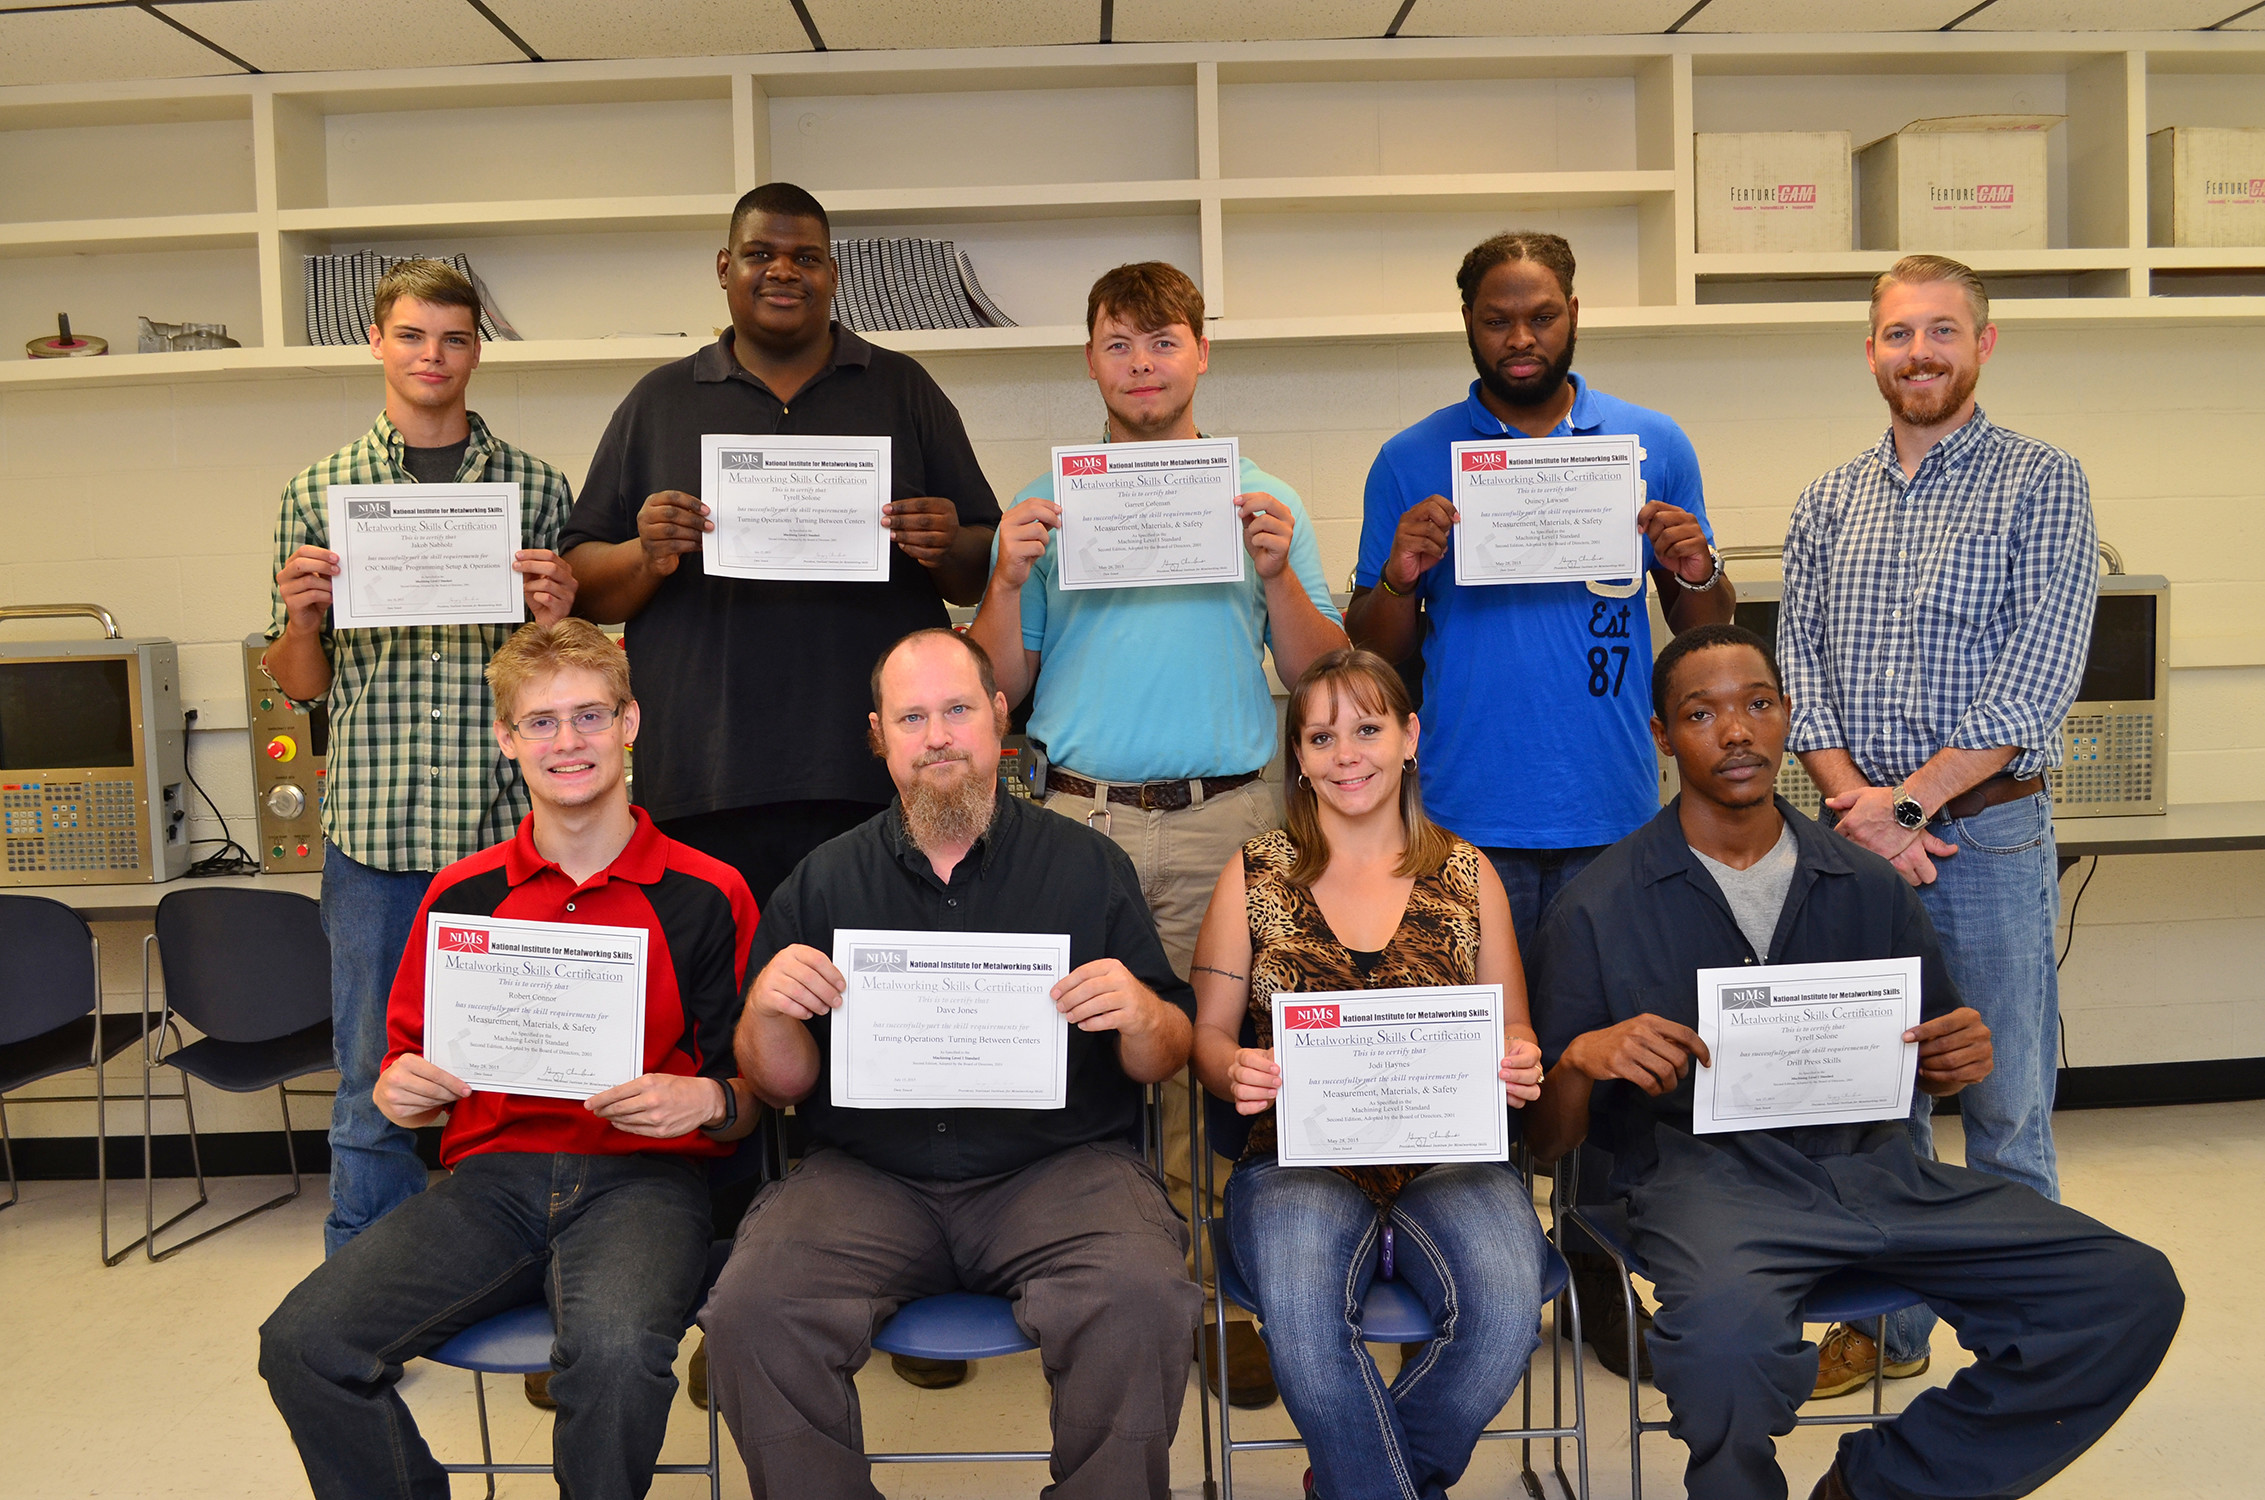 CCTC students earn national credentials | The Sumter Item